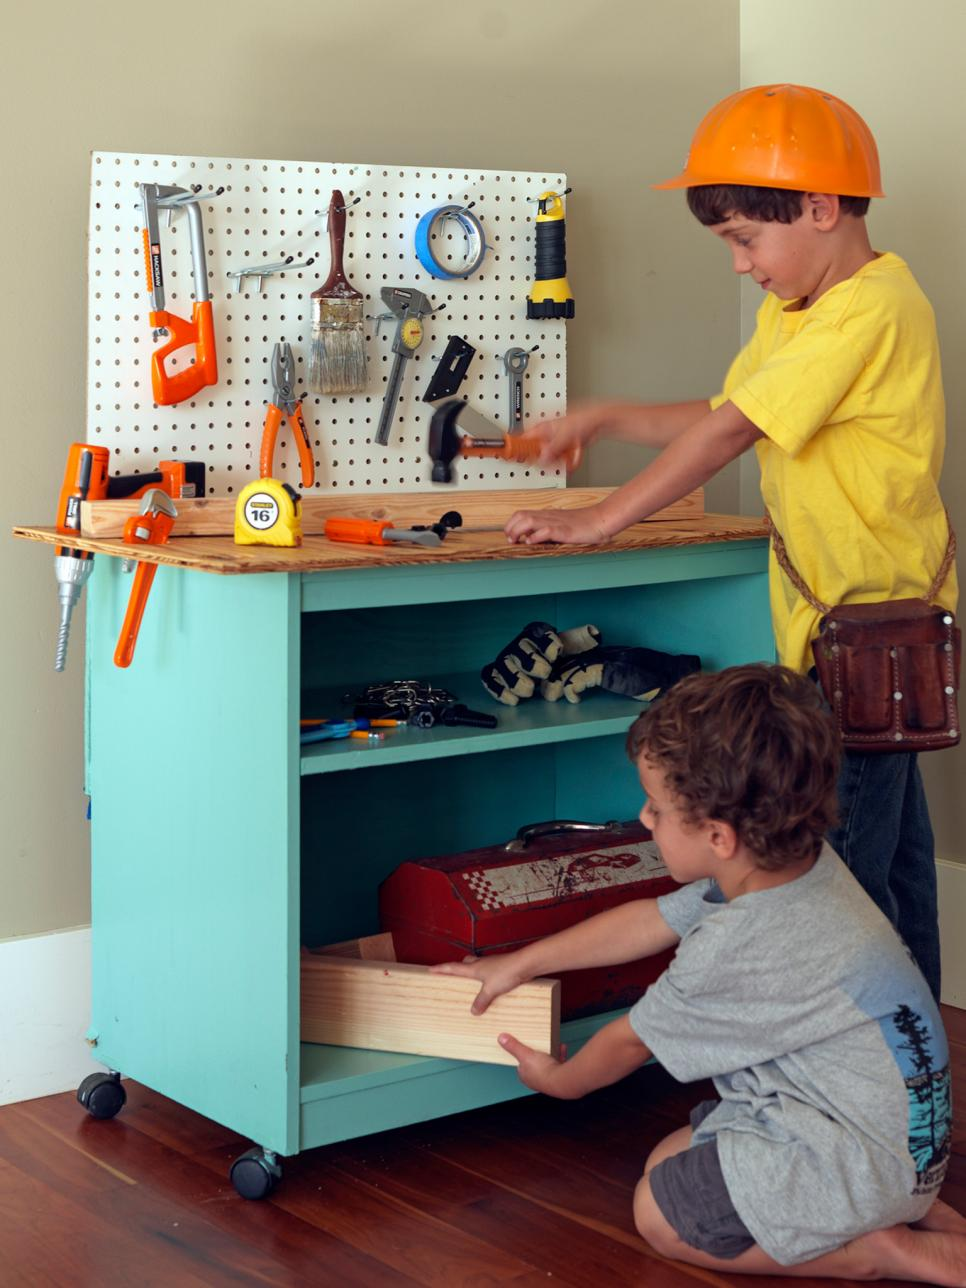 ci-susanteare_upcycled-toy-workbench_v-jpg-rend-hgtvcom-966-1288